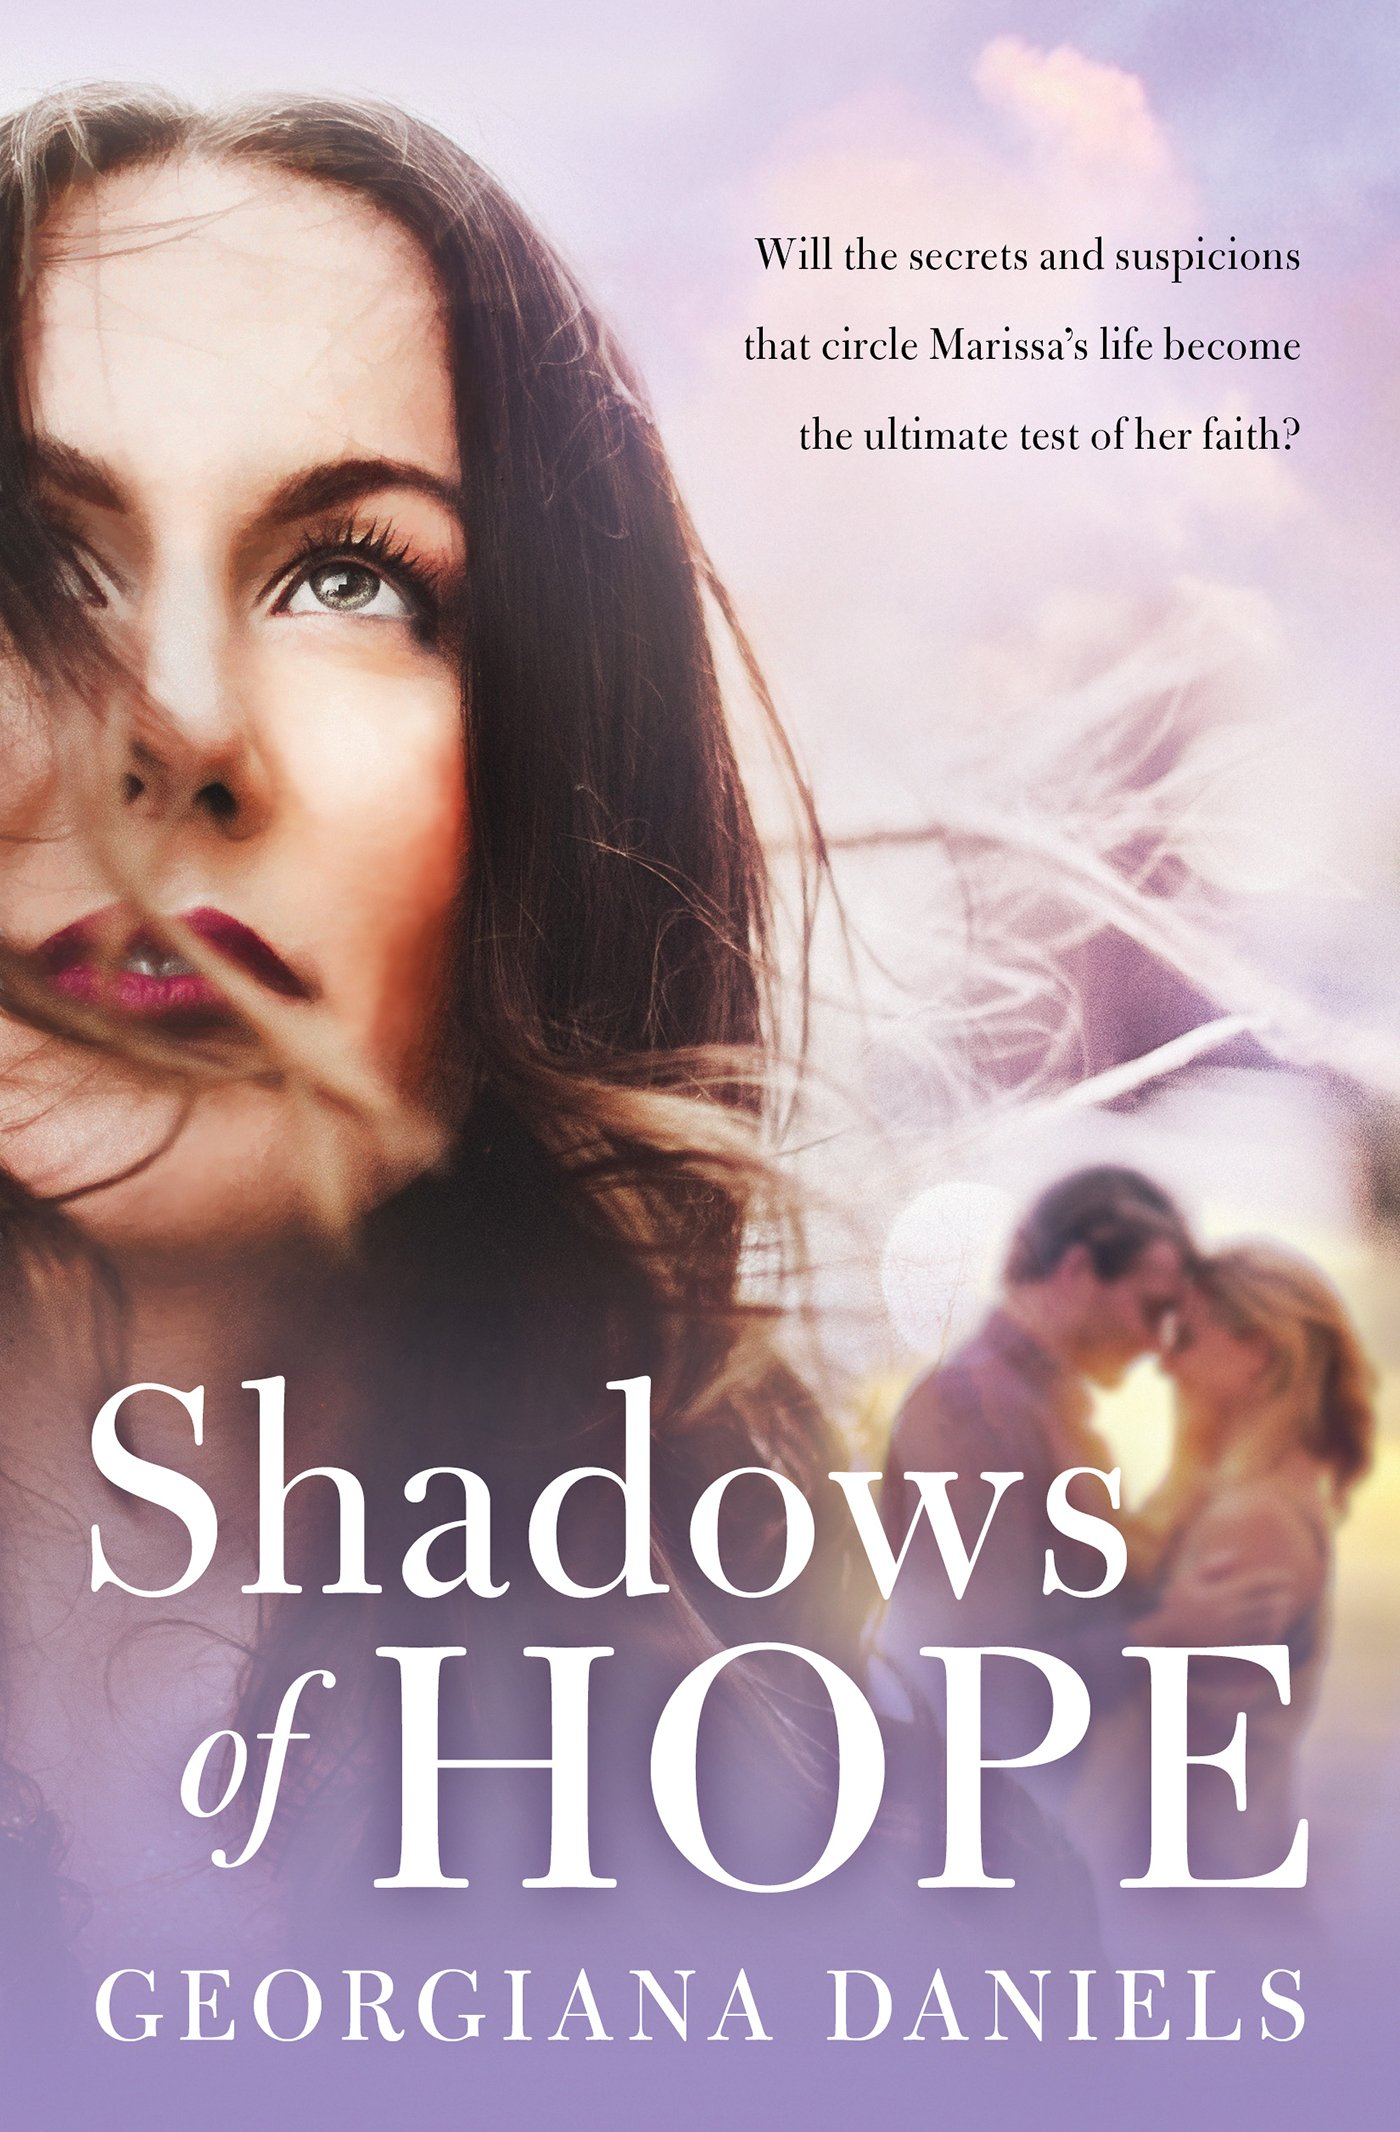 Image result for shadows of hope georgiana daniels